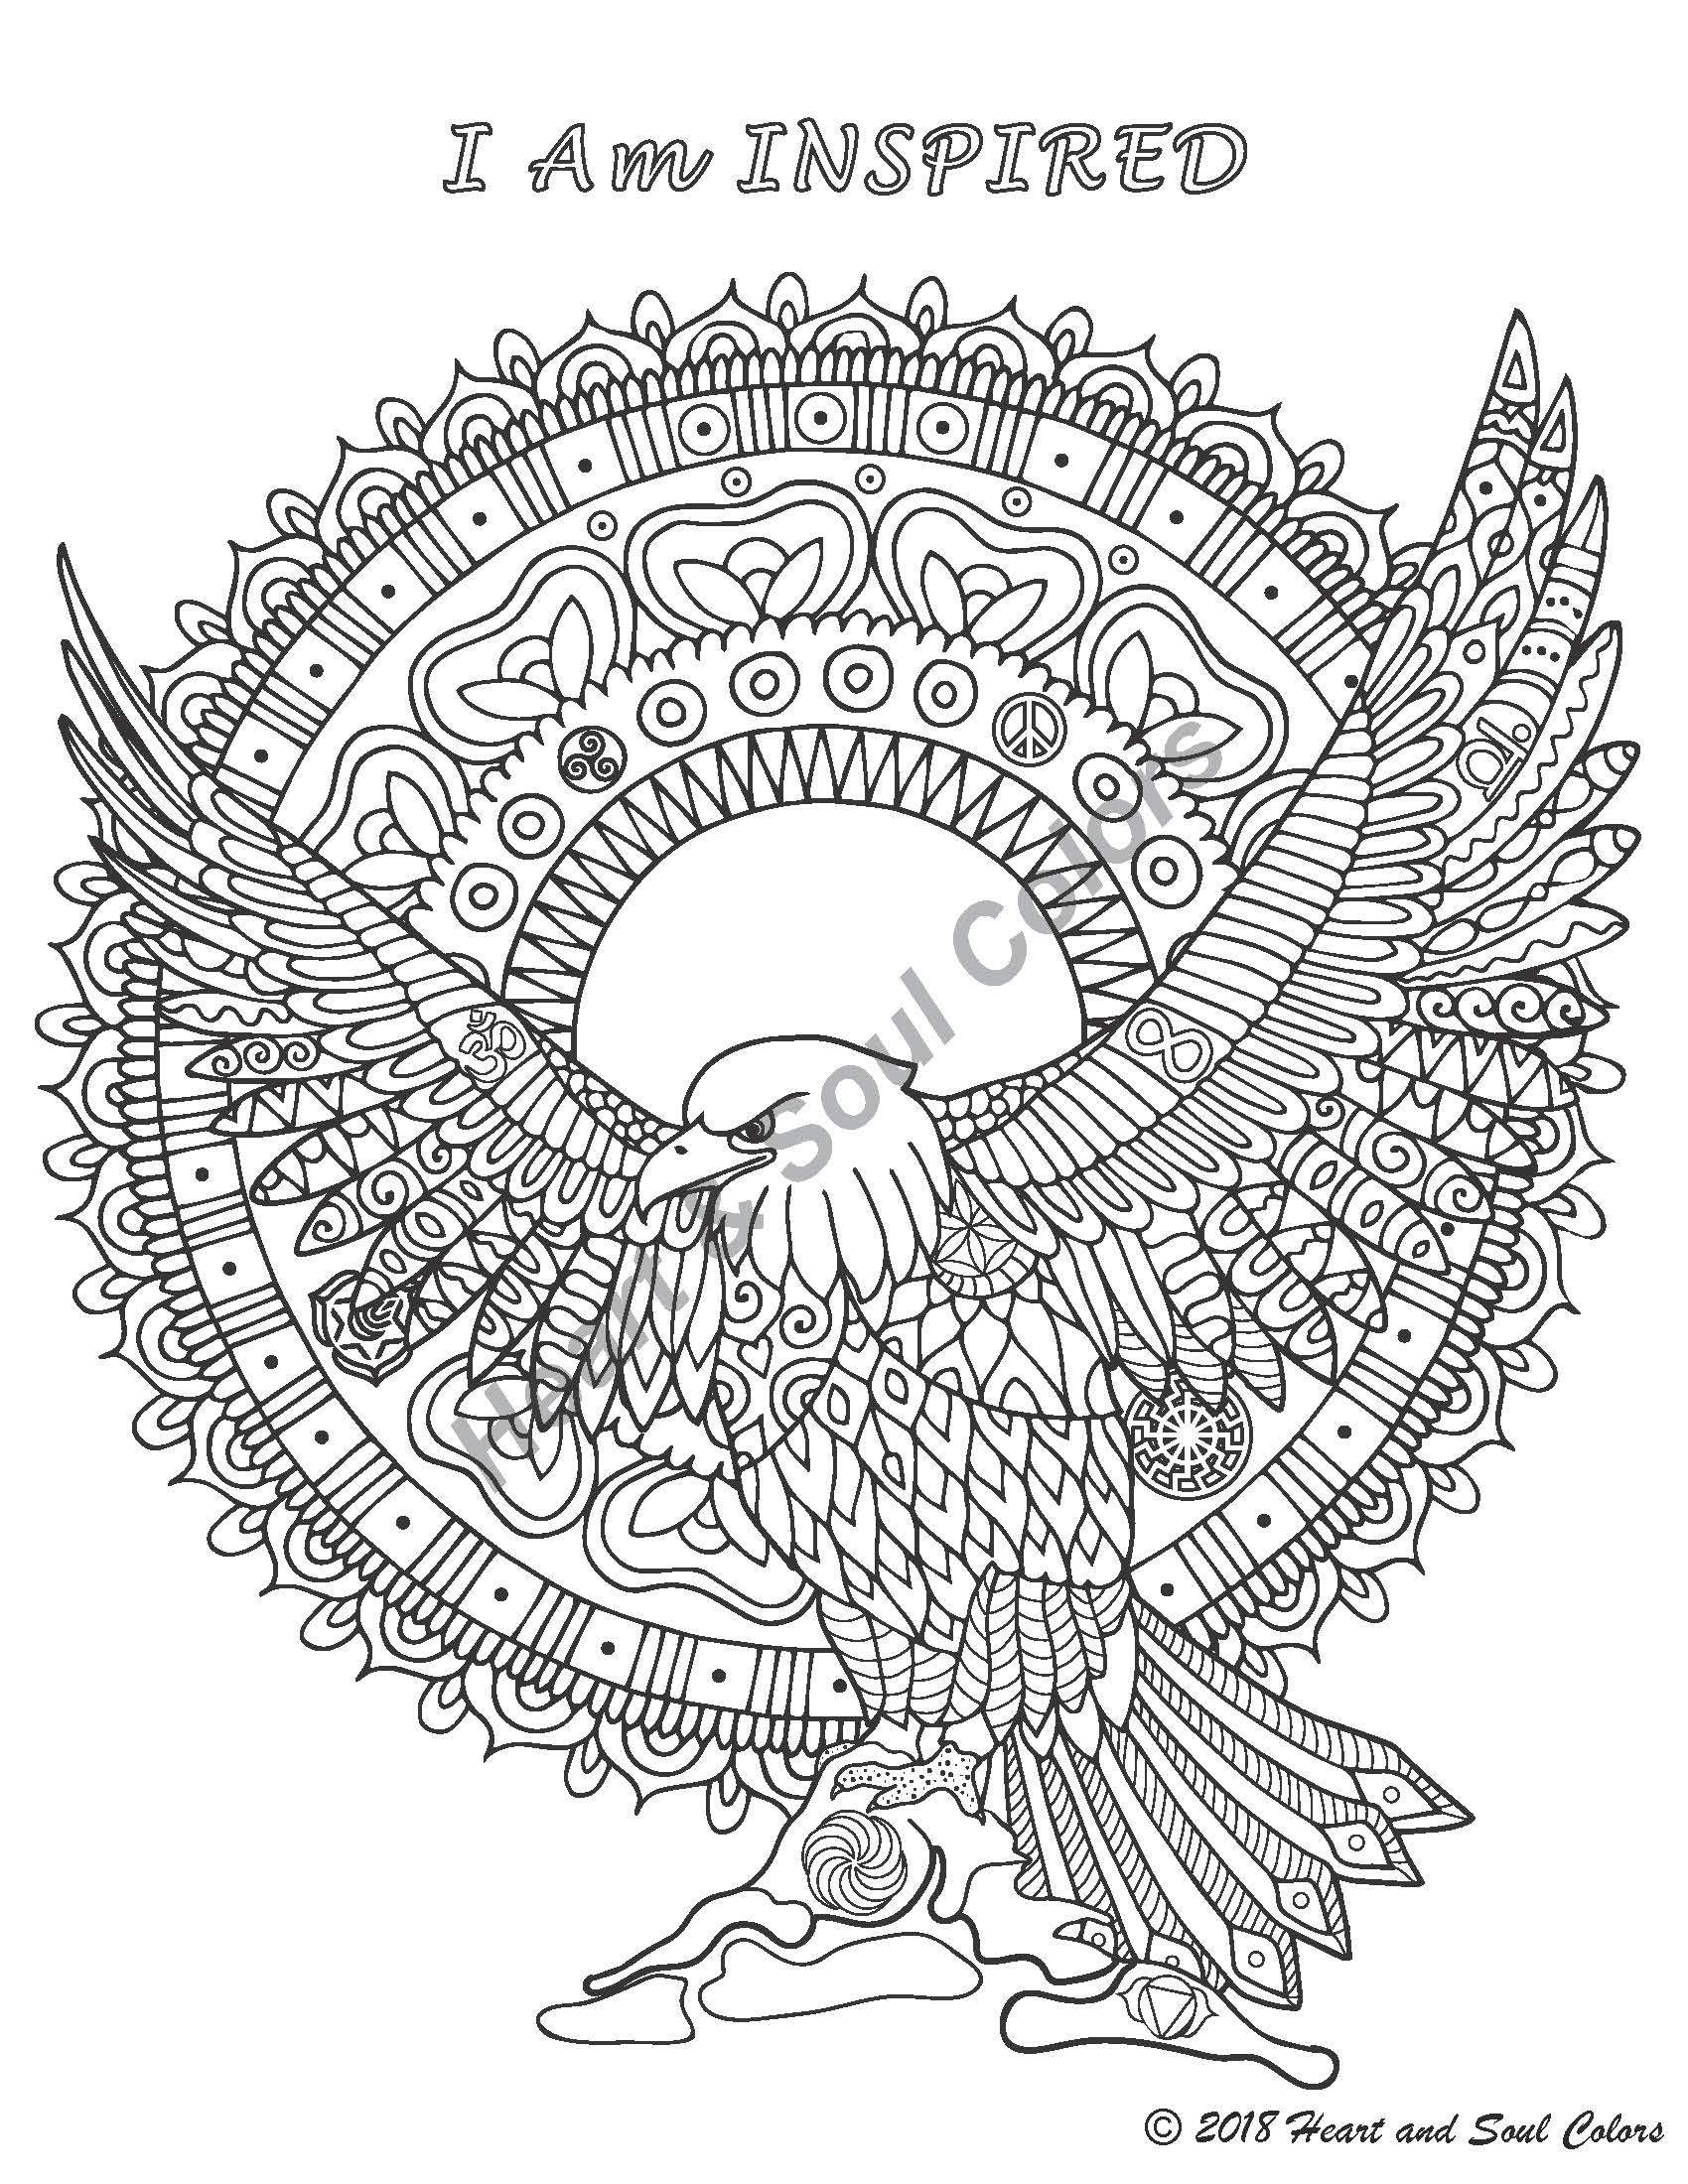 I Am INSPIRED Eagle: I Am INSPIRED Purpose: To live in the full flow of your power, strength, and expression, decisively and confidently connected to universal energy.